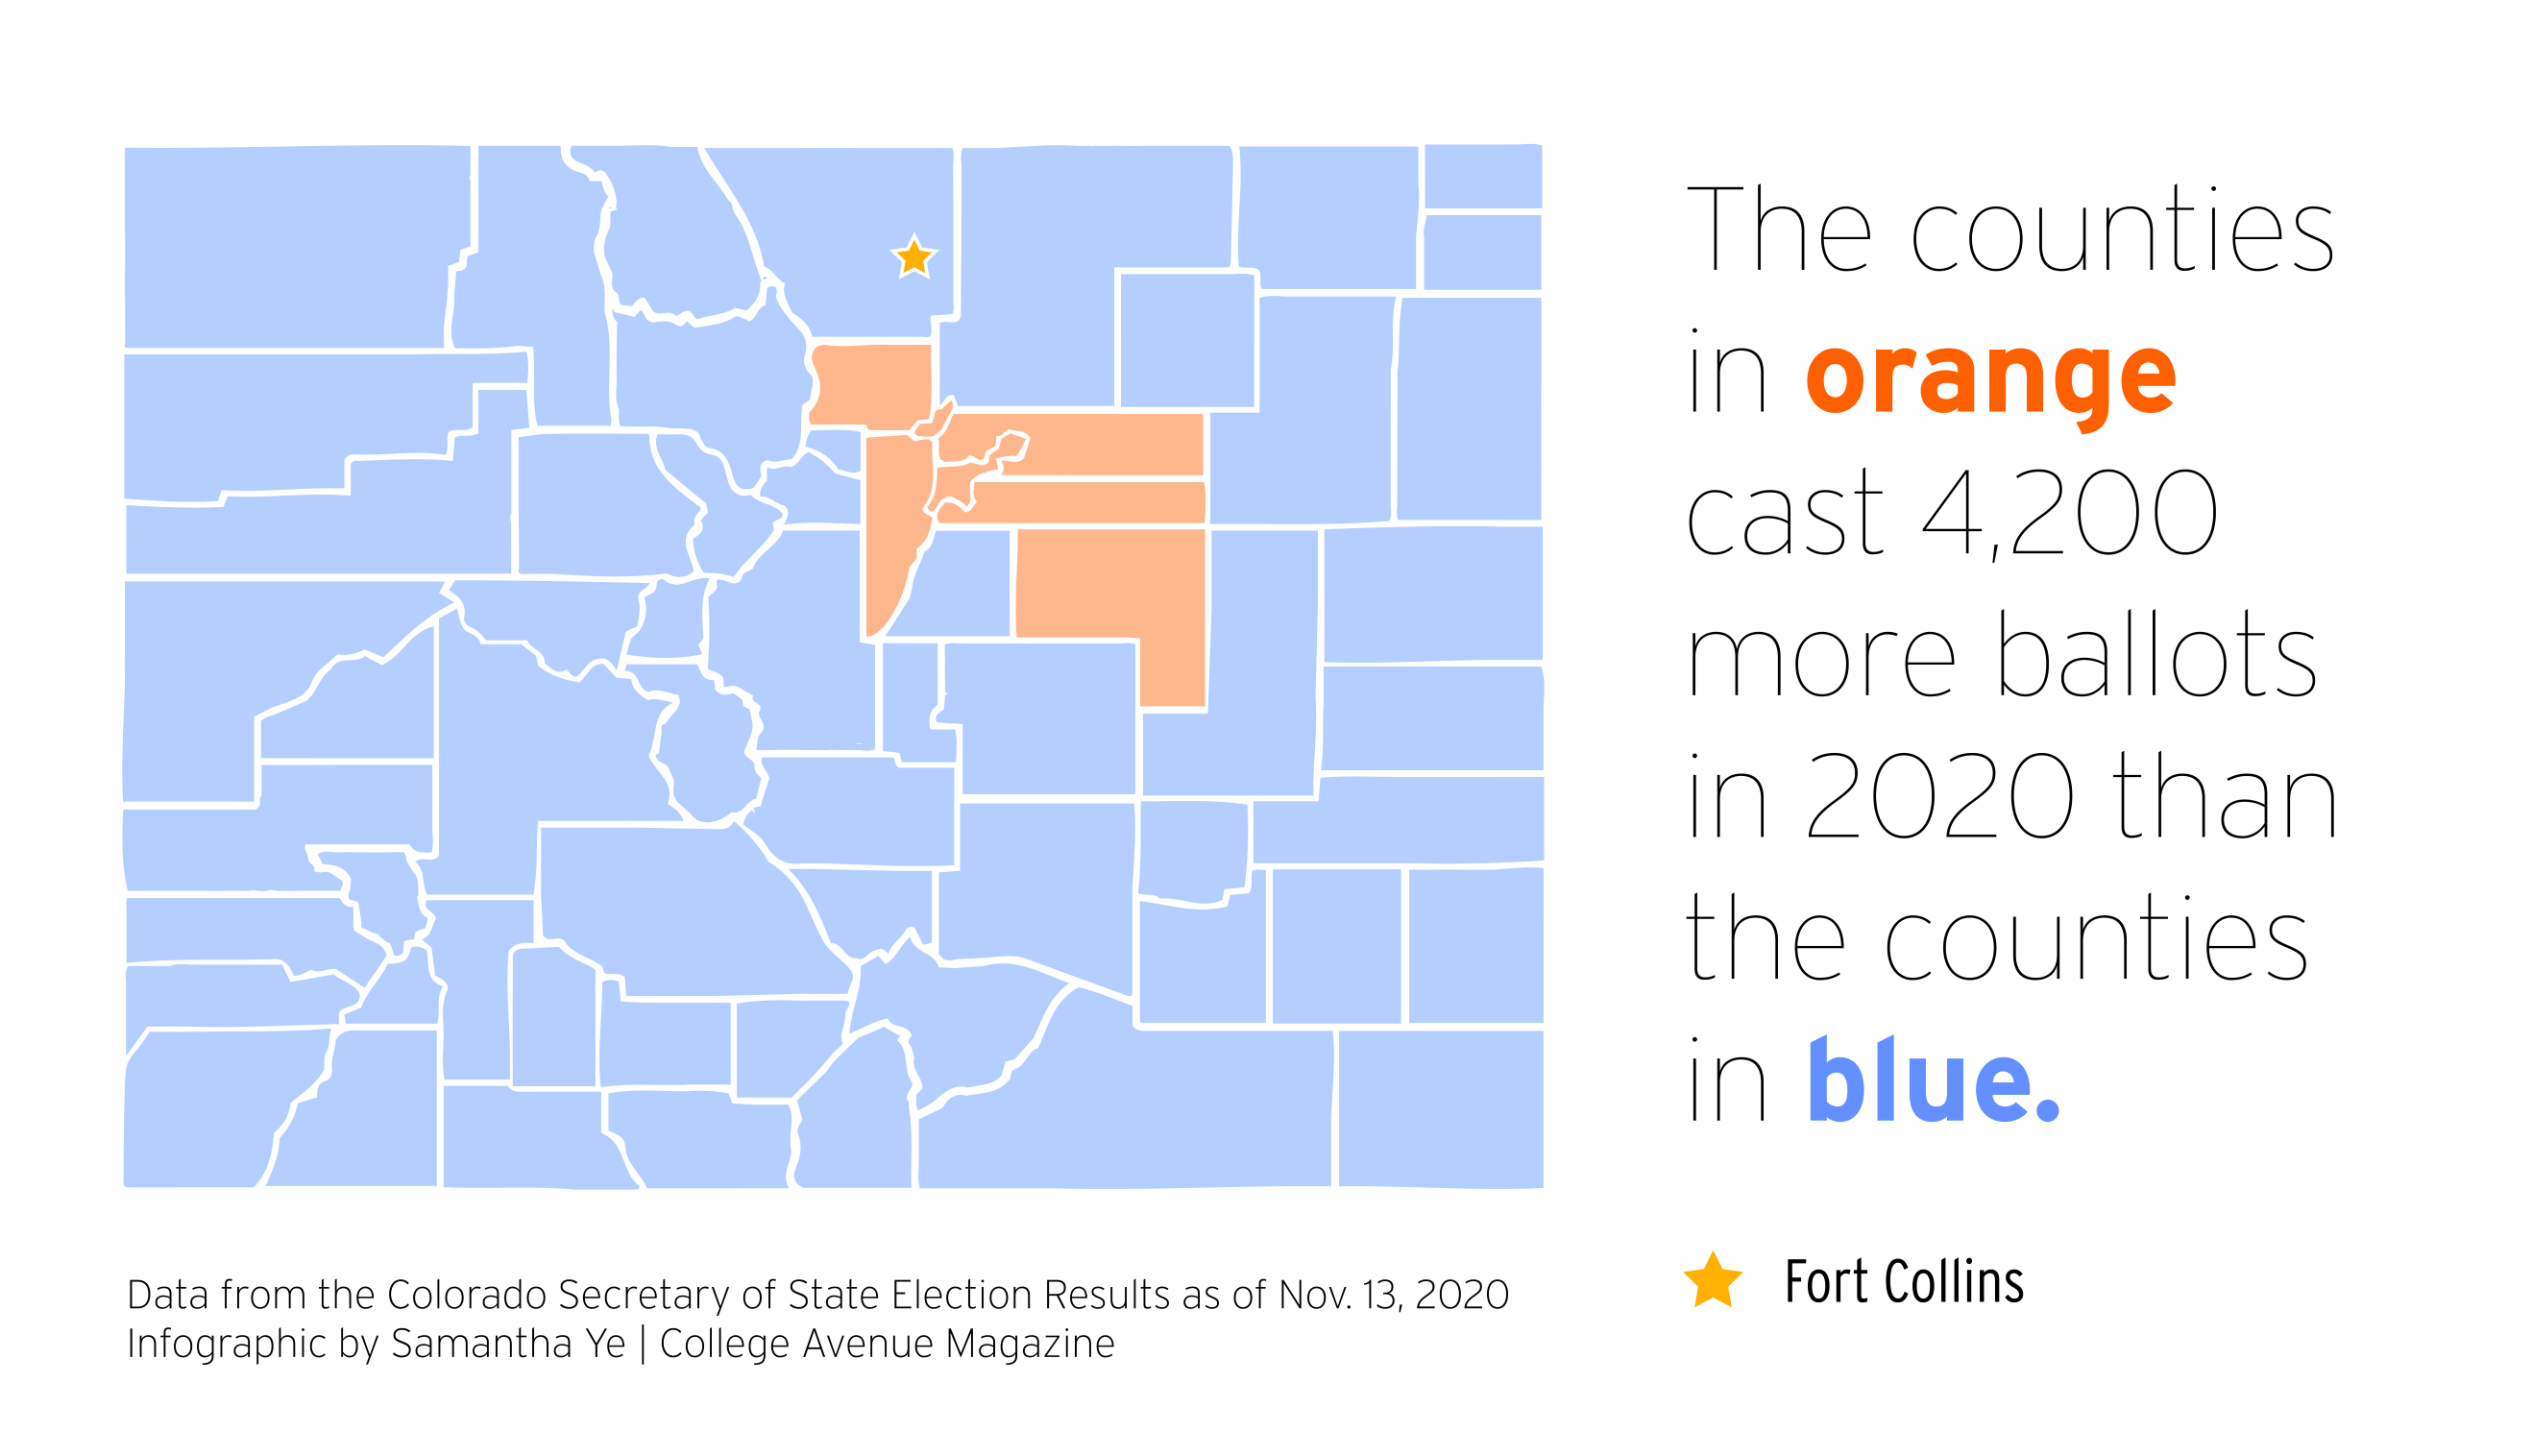 The counties in orange cast 4,200 more ballots in 2020 than the counties in blue.